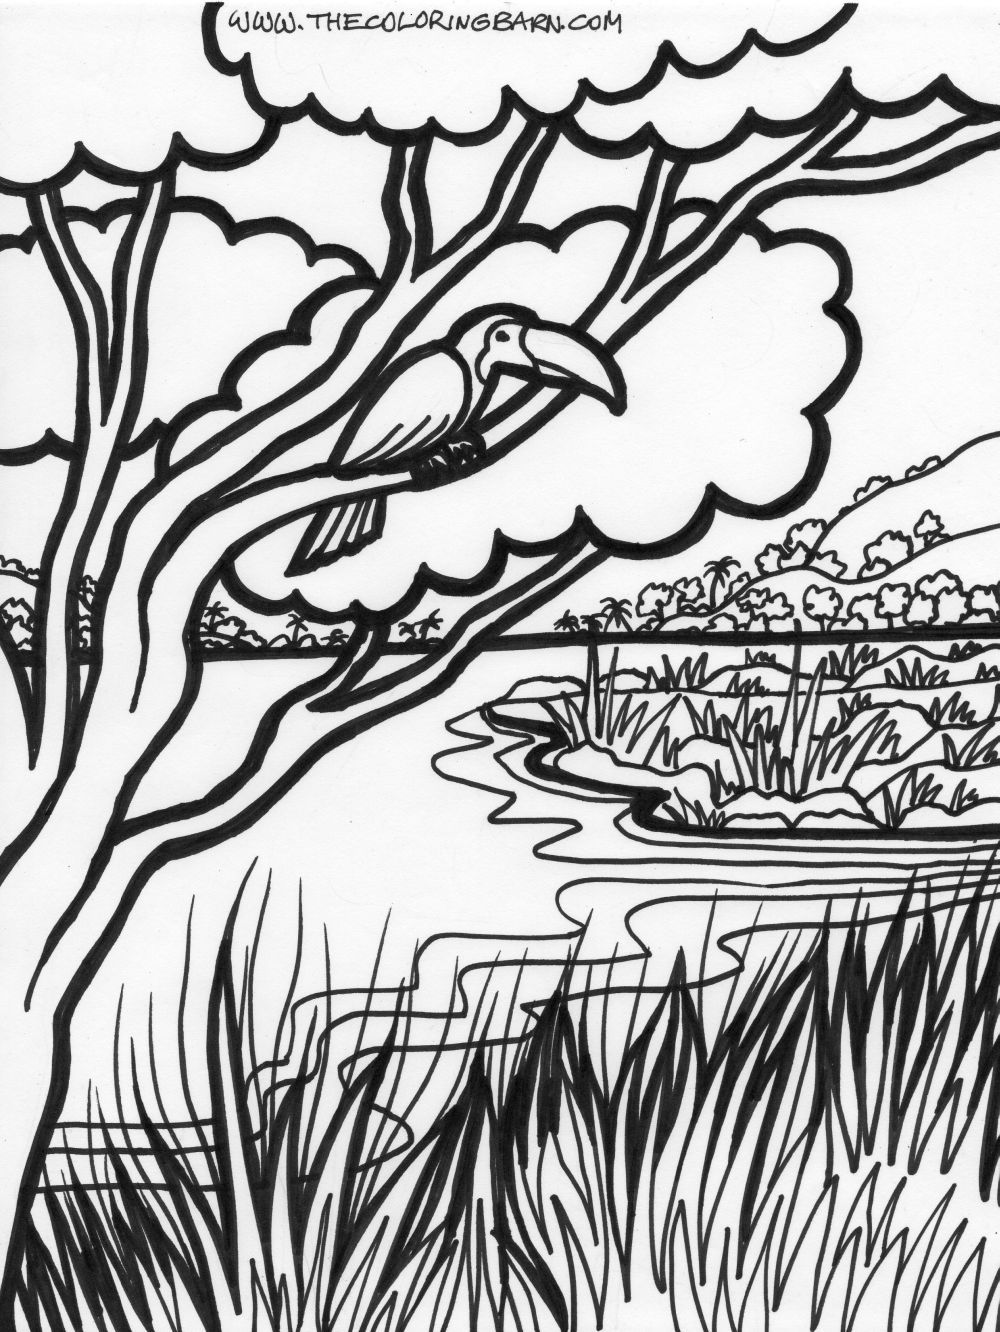 Jungle book coloring pages online - Jungle Coloring Pages Free Description Of Jungle Trees Coloring Pages 6 Background